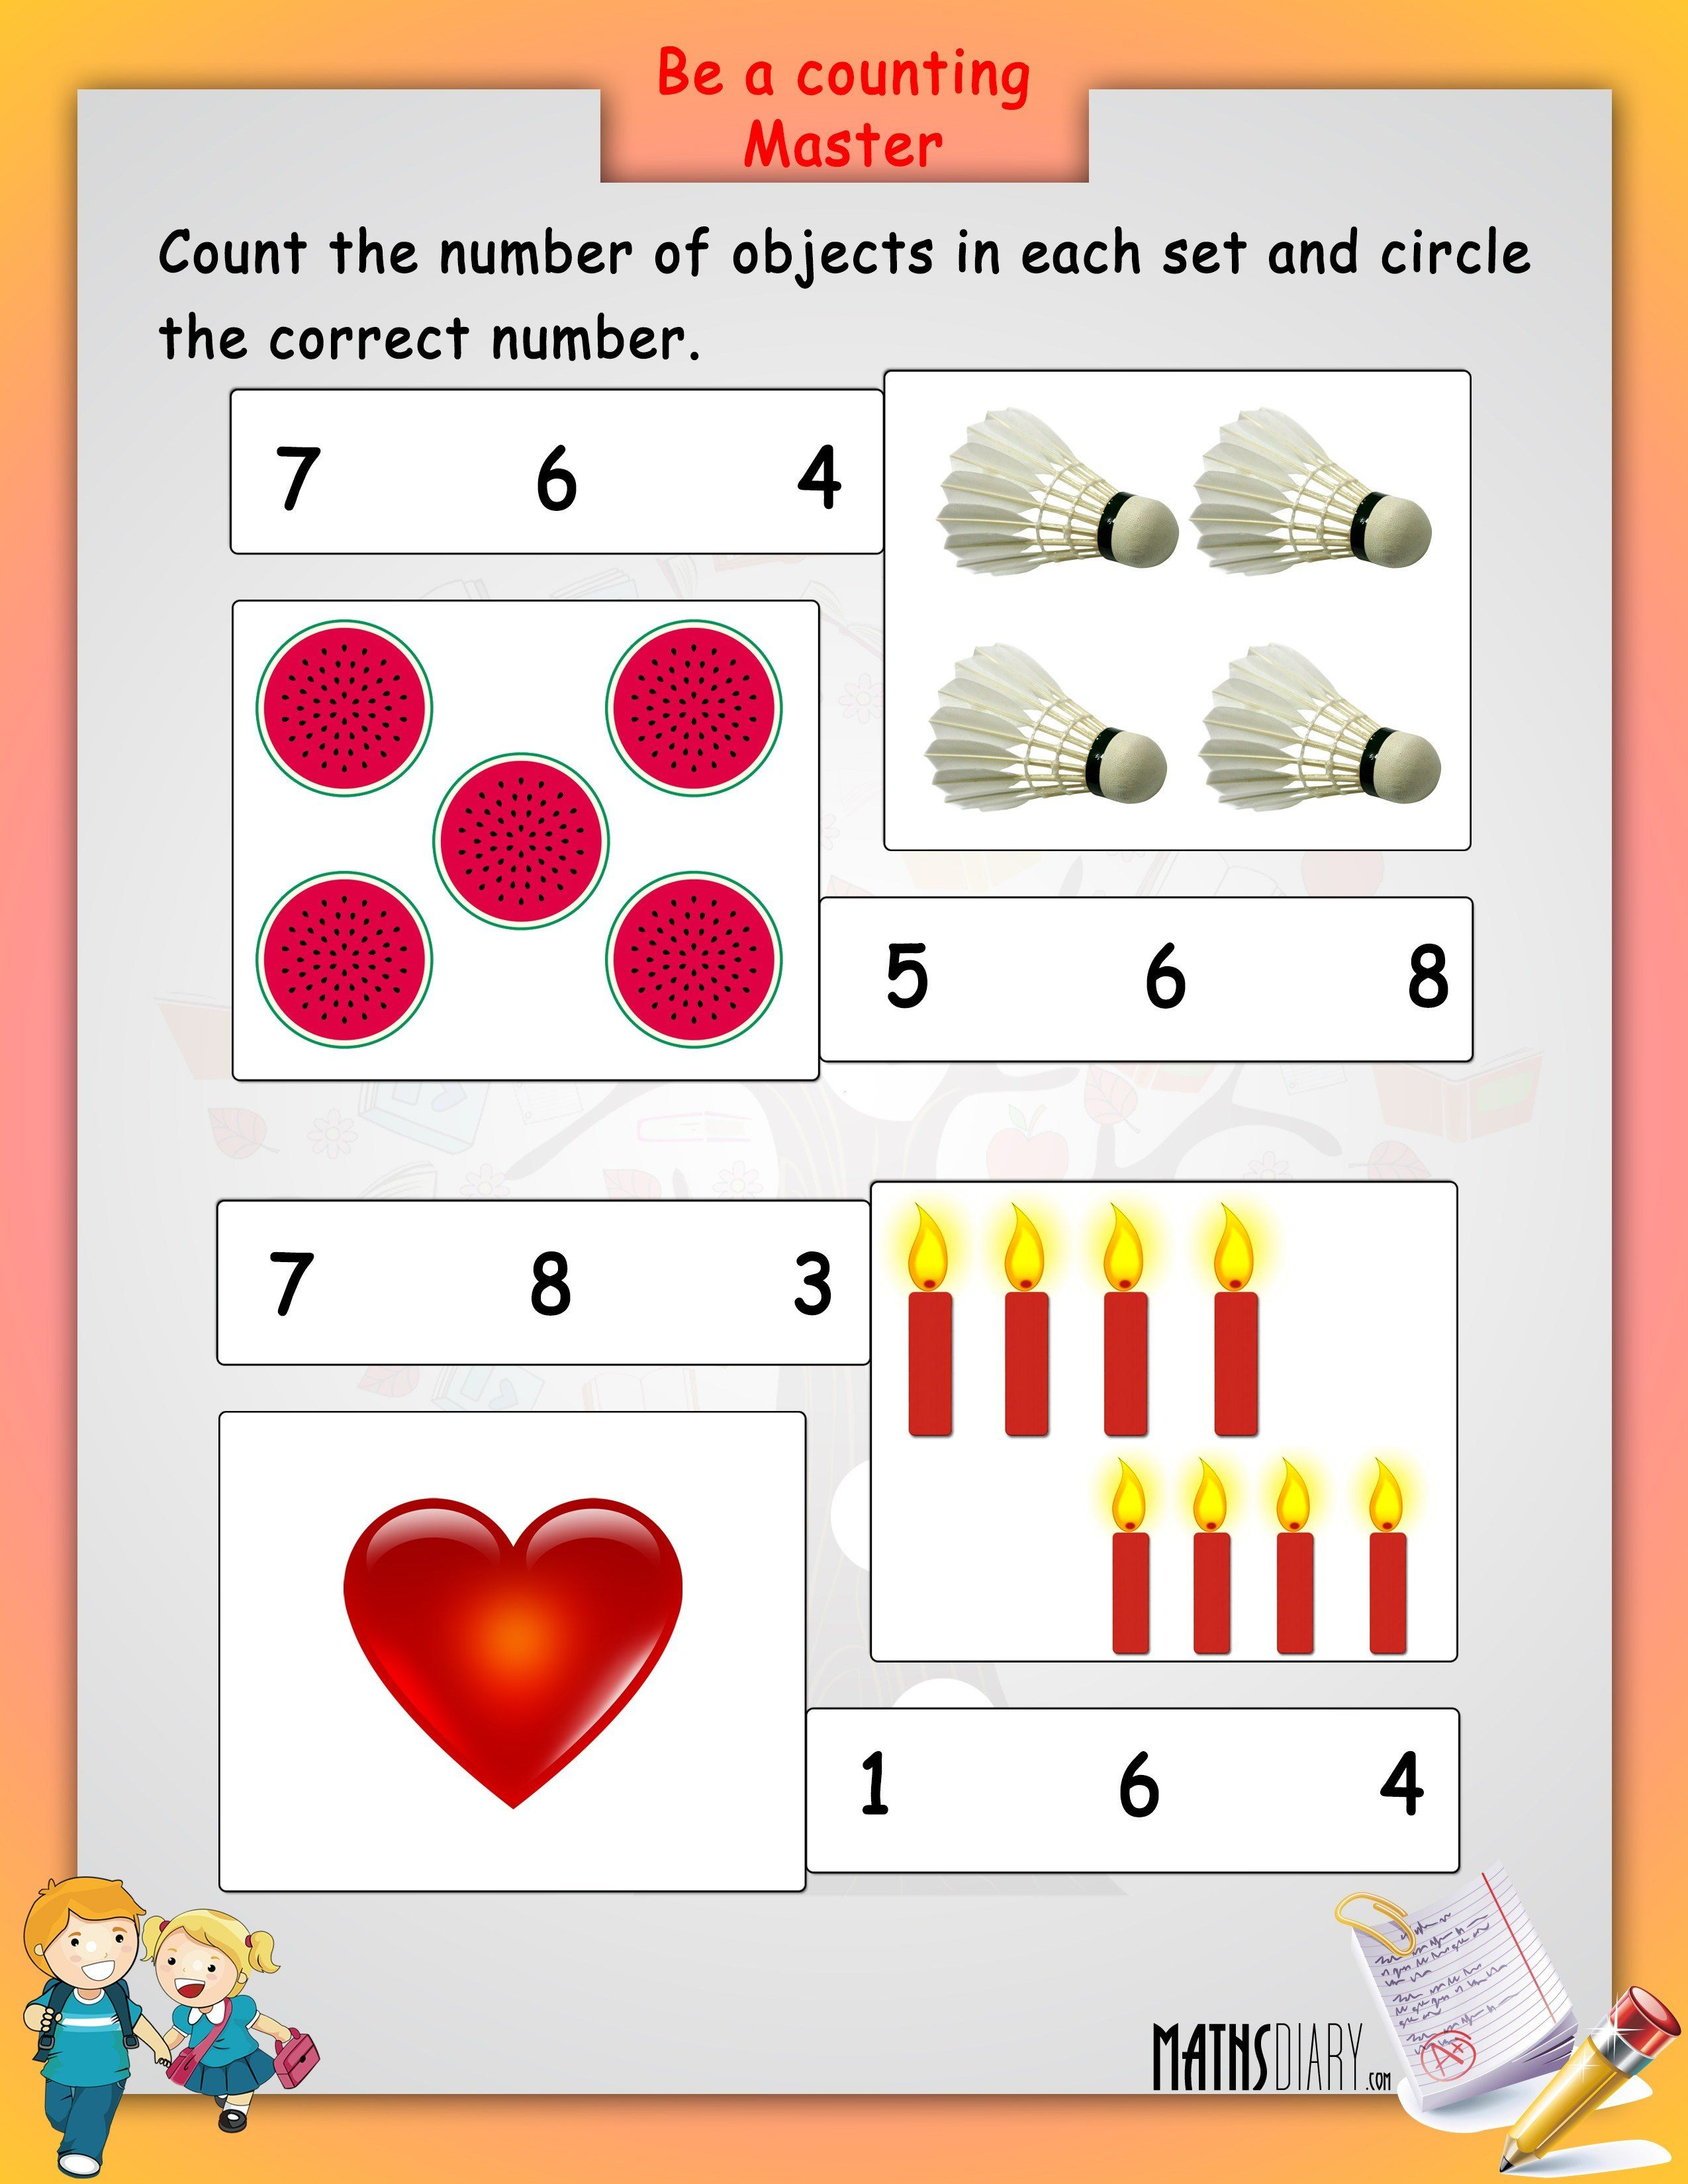 educomp lkg math worksheets - Yahoo Image Search Results | nubers ...